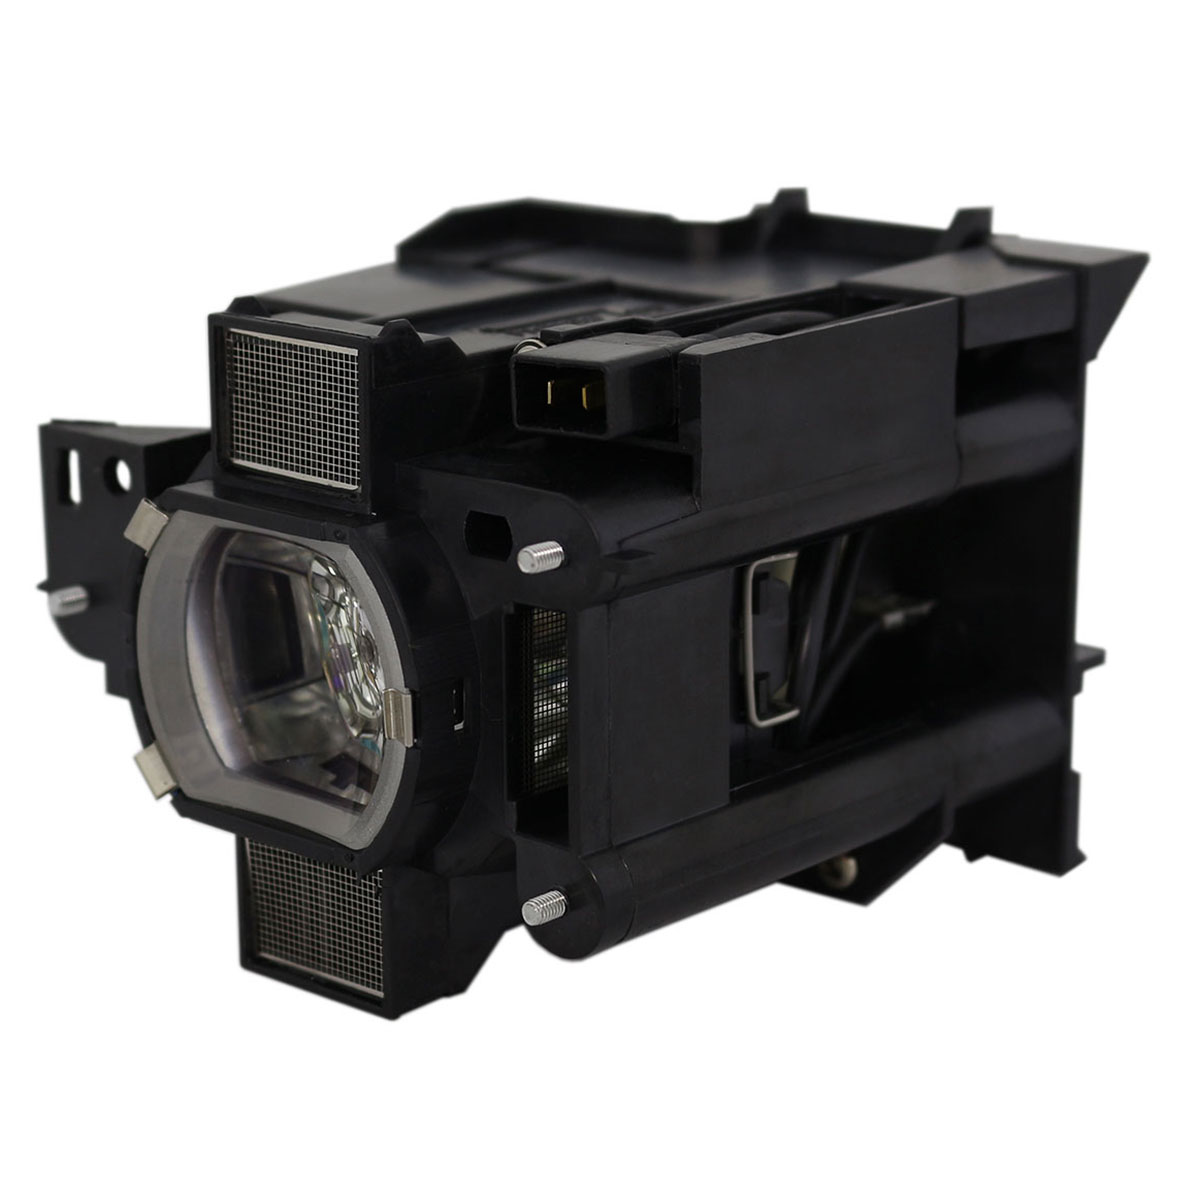 Lutema Platinum for Hitachi DT01291 Projector Lamp with Housing (Original Philips Bulb Inside) - image 5 of 5